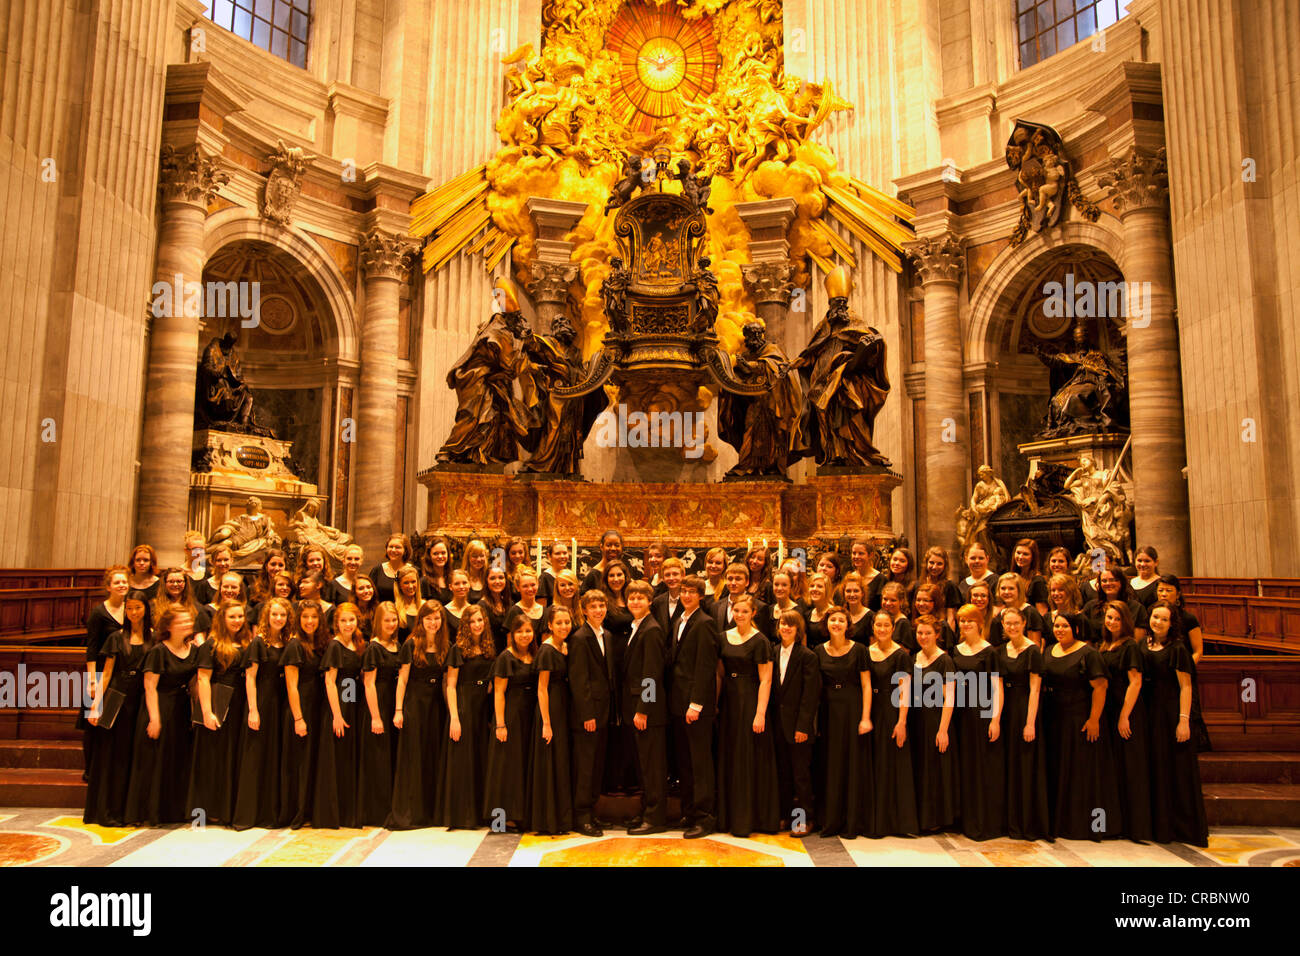 American choir visiting the St. Peter's Basilica, Vatican City, Rome, Lazio, Italy, Europe - Stock Image